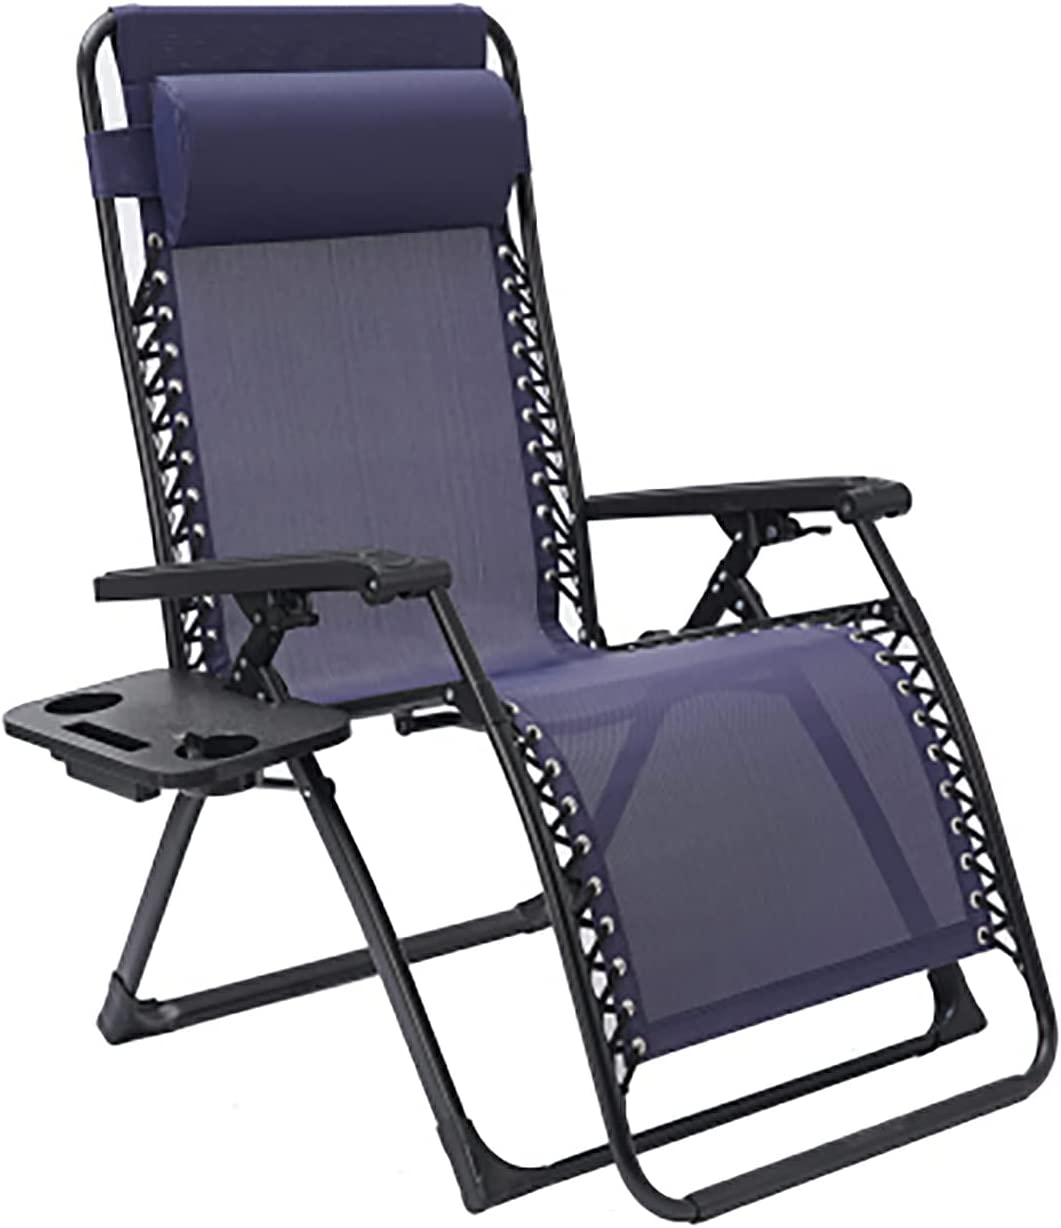 Zero Gravity Lounge Chair Outdoor Recl Cheap sale Folding Patio Today's only Camp